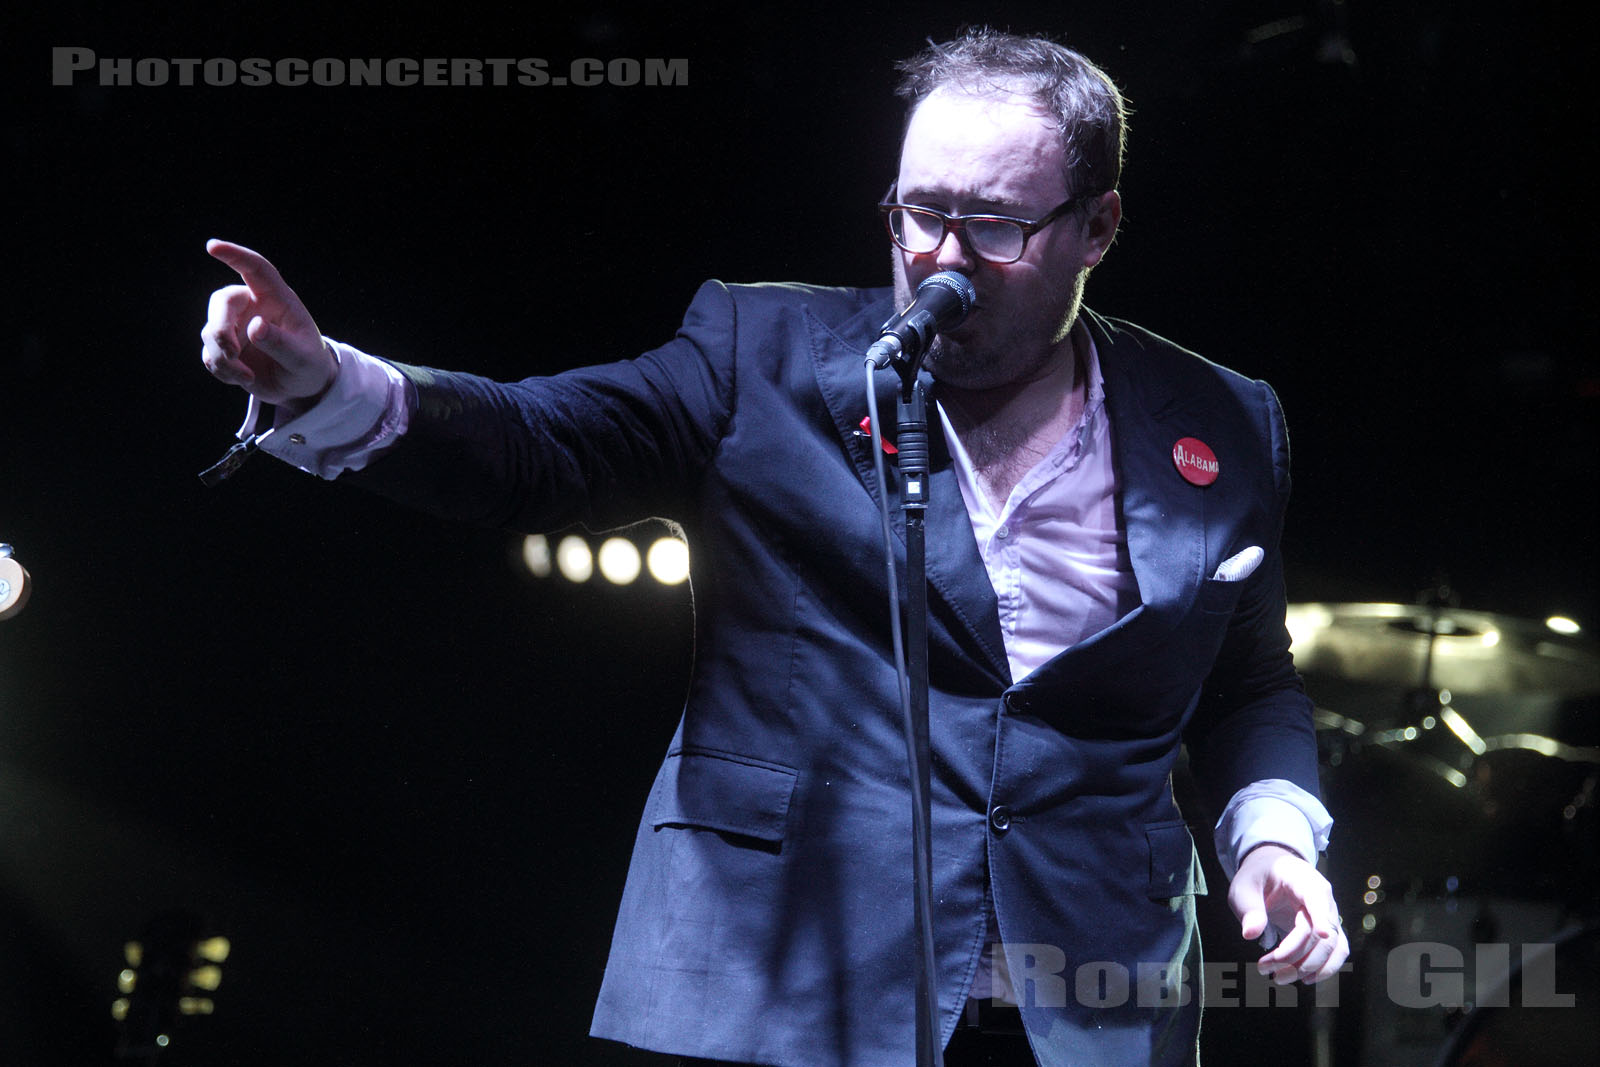 ST. PAUL AND THE BROKEN BONES - 2015-06-28 - PARIS - Hippodrome de Longchamp